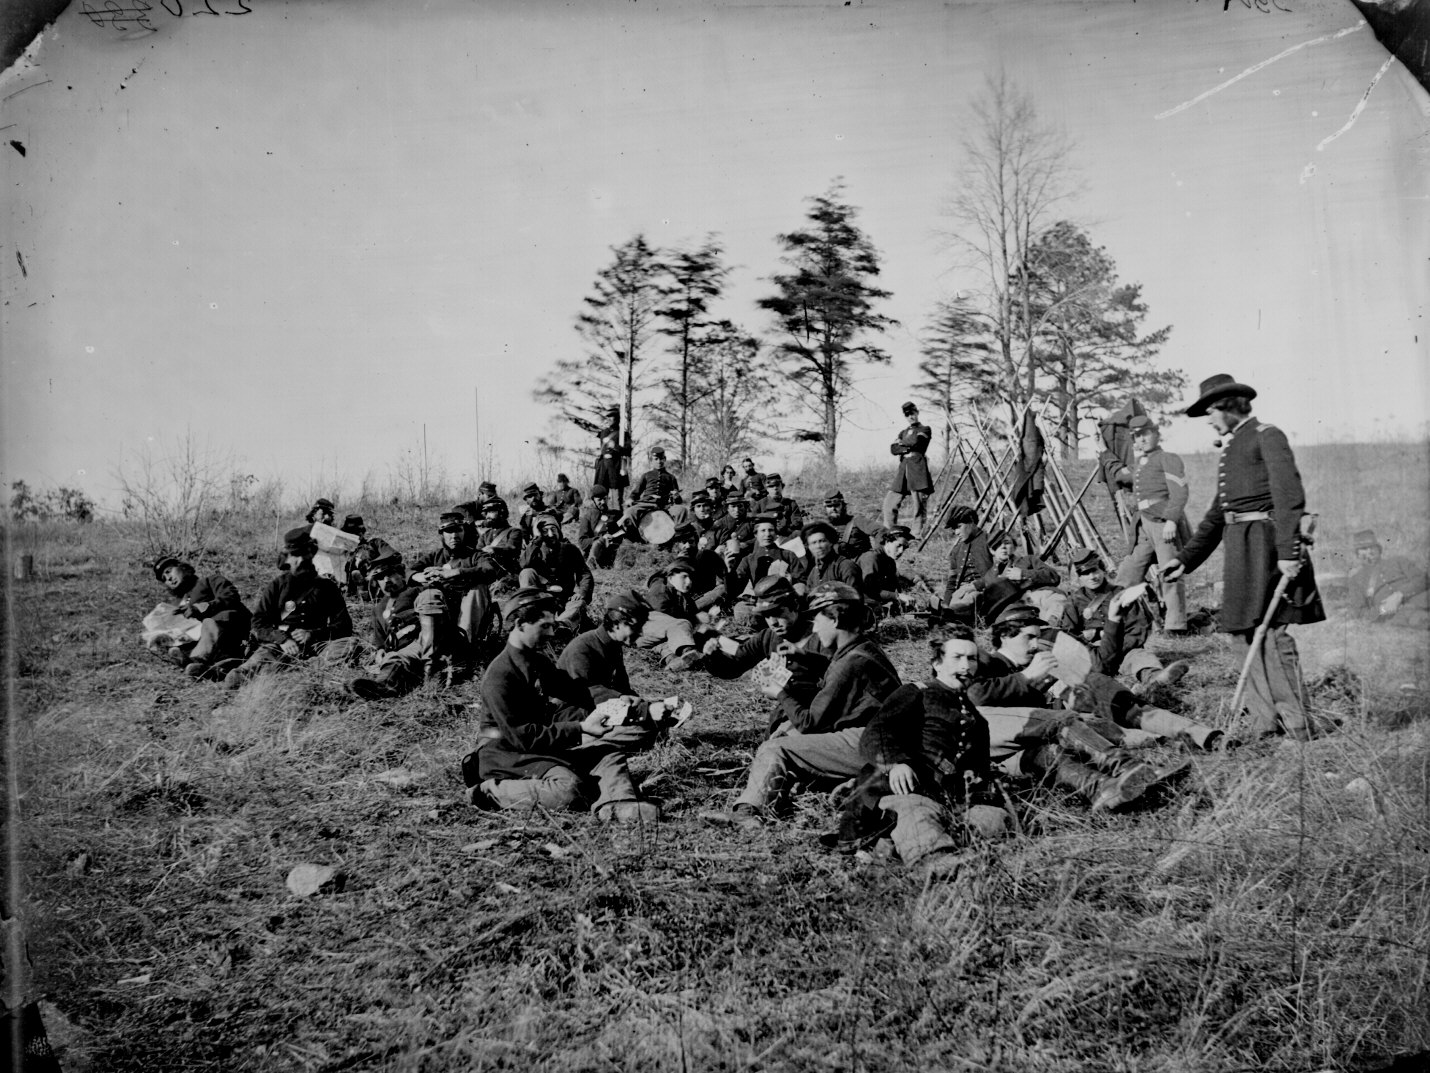 Union soldiers resting after drilling Petersburg, VA, 1864. Courtesy NARA